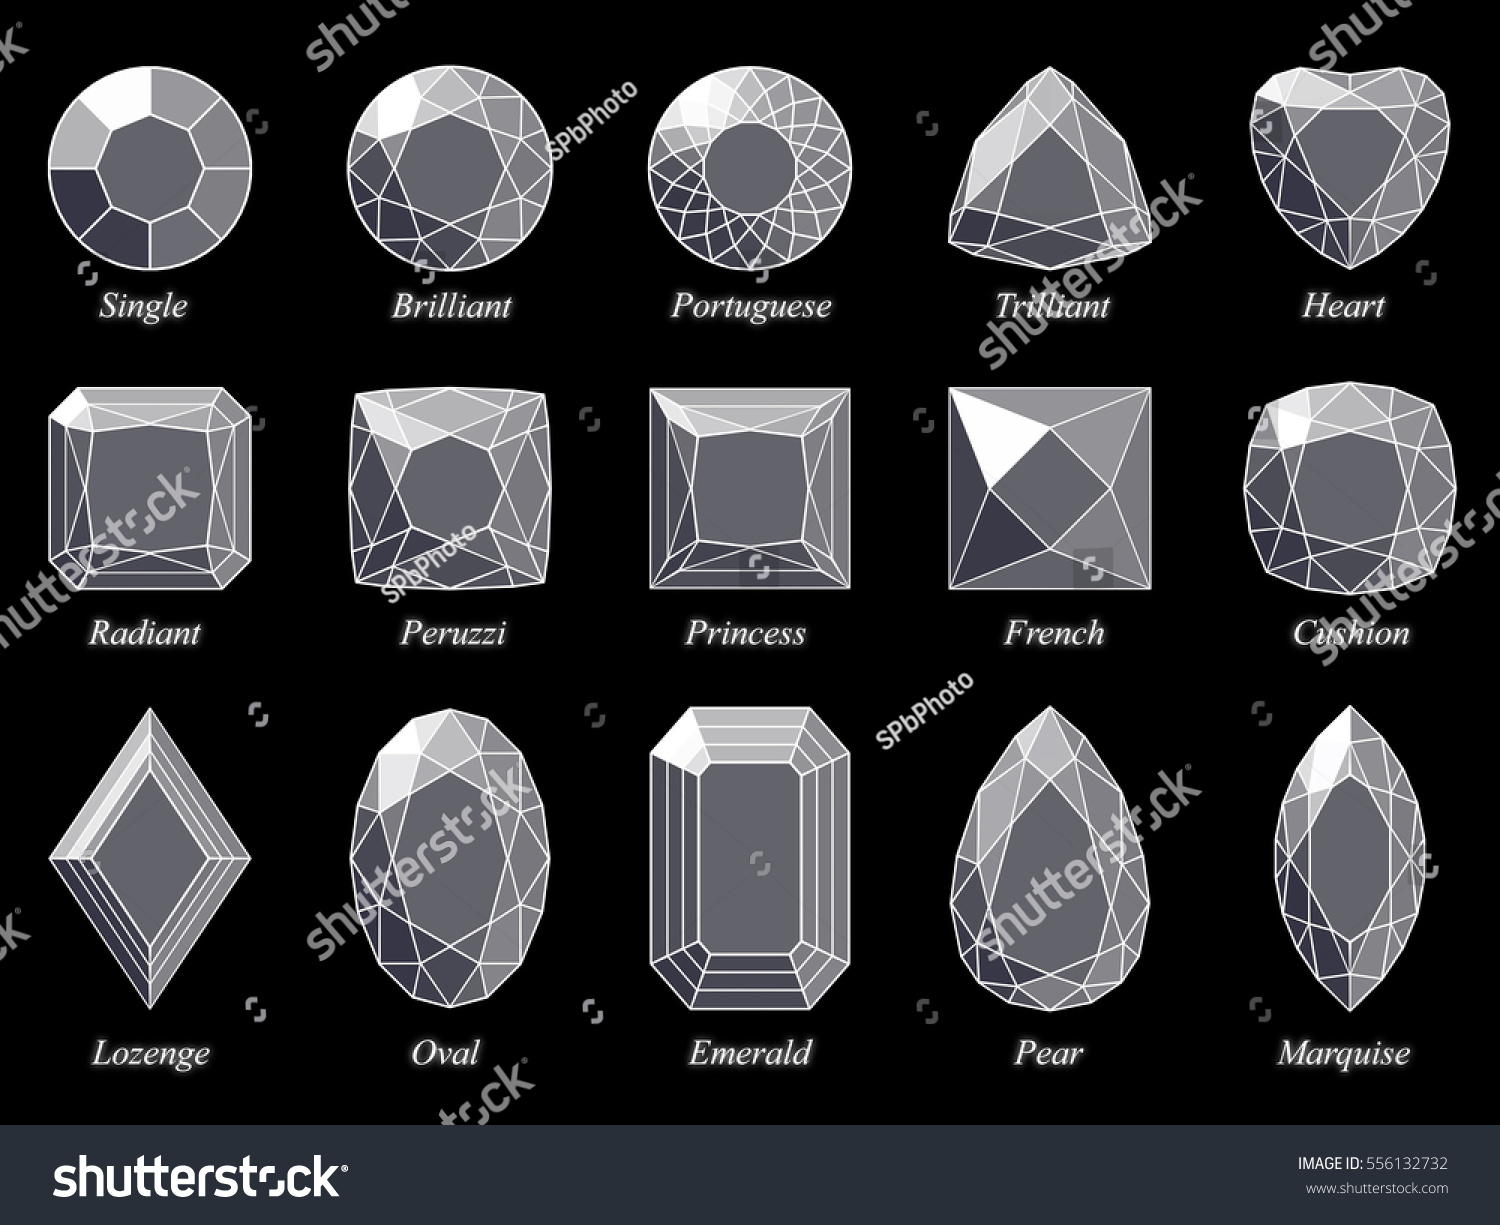 Set fifteen various diamond cut shape stock illustration 556132732 set of fifteen various diamond cut shape and design diagrams with their names top view ccuart